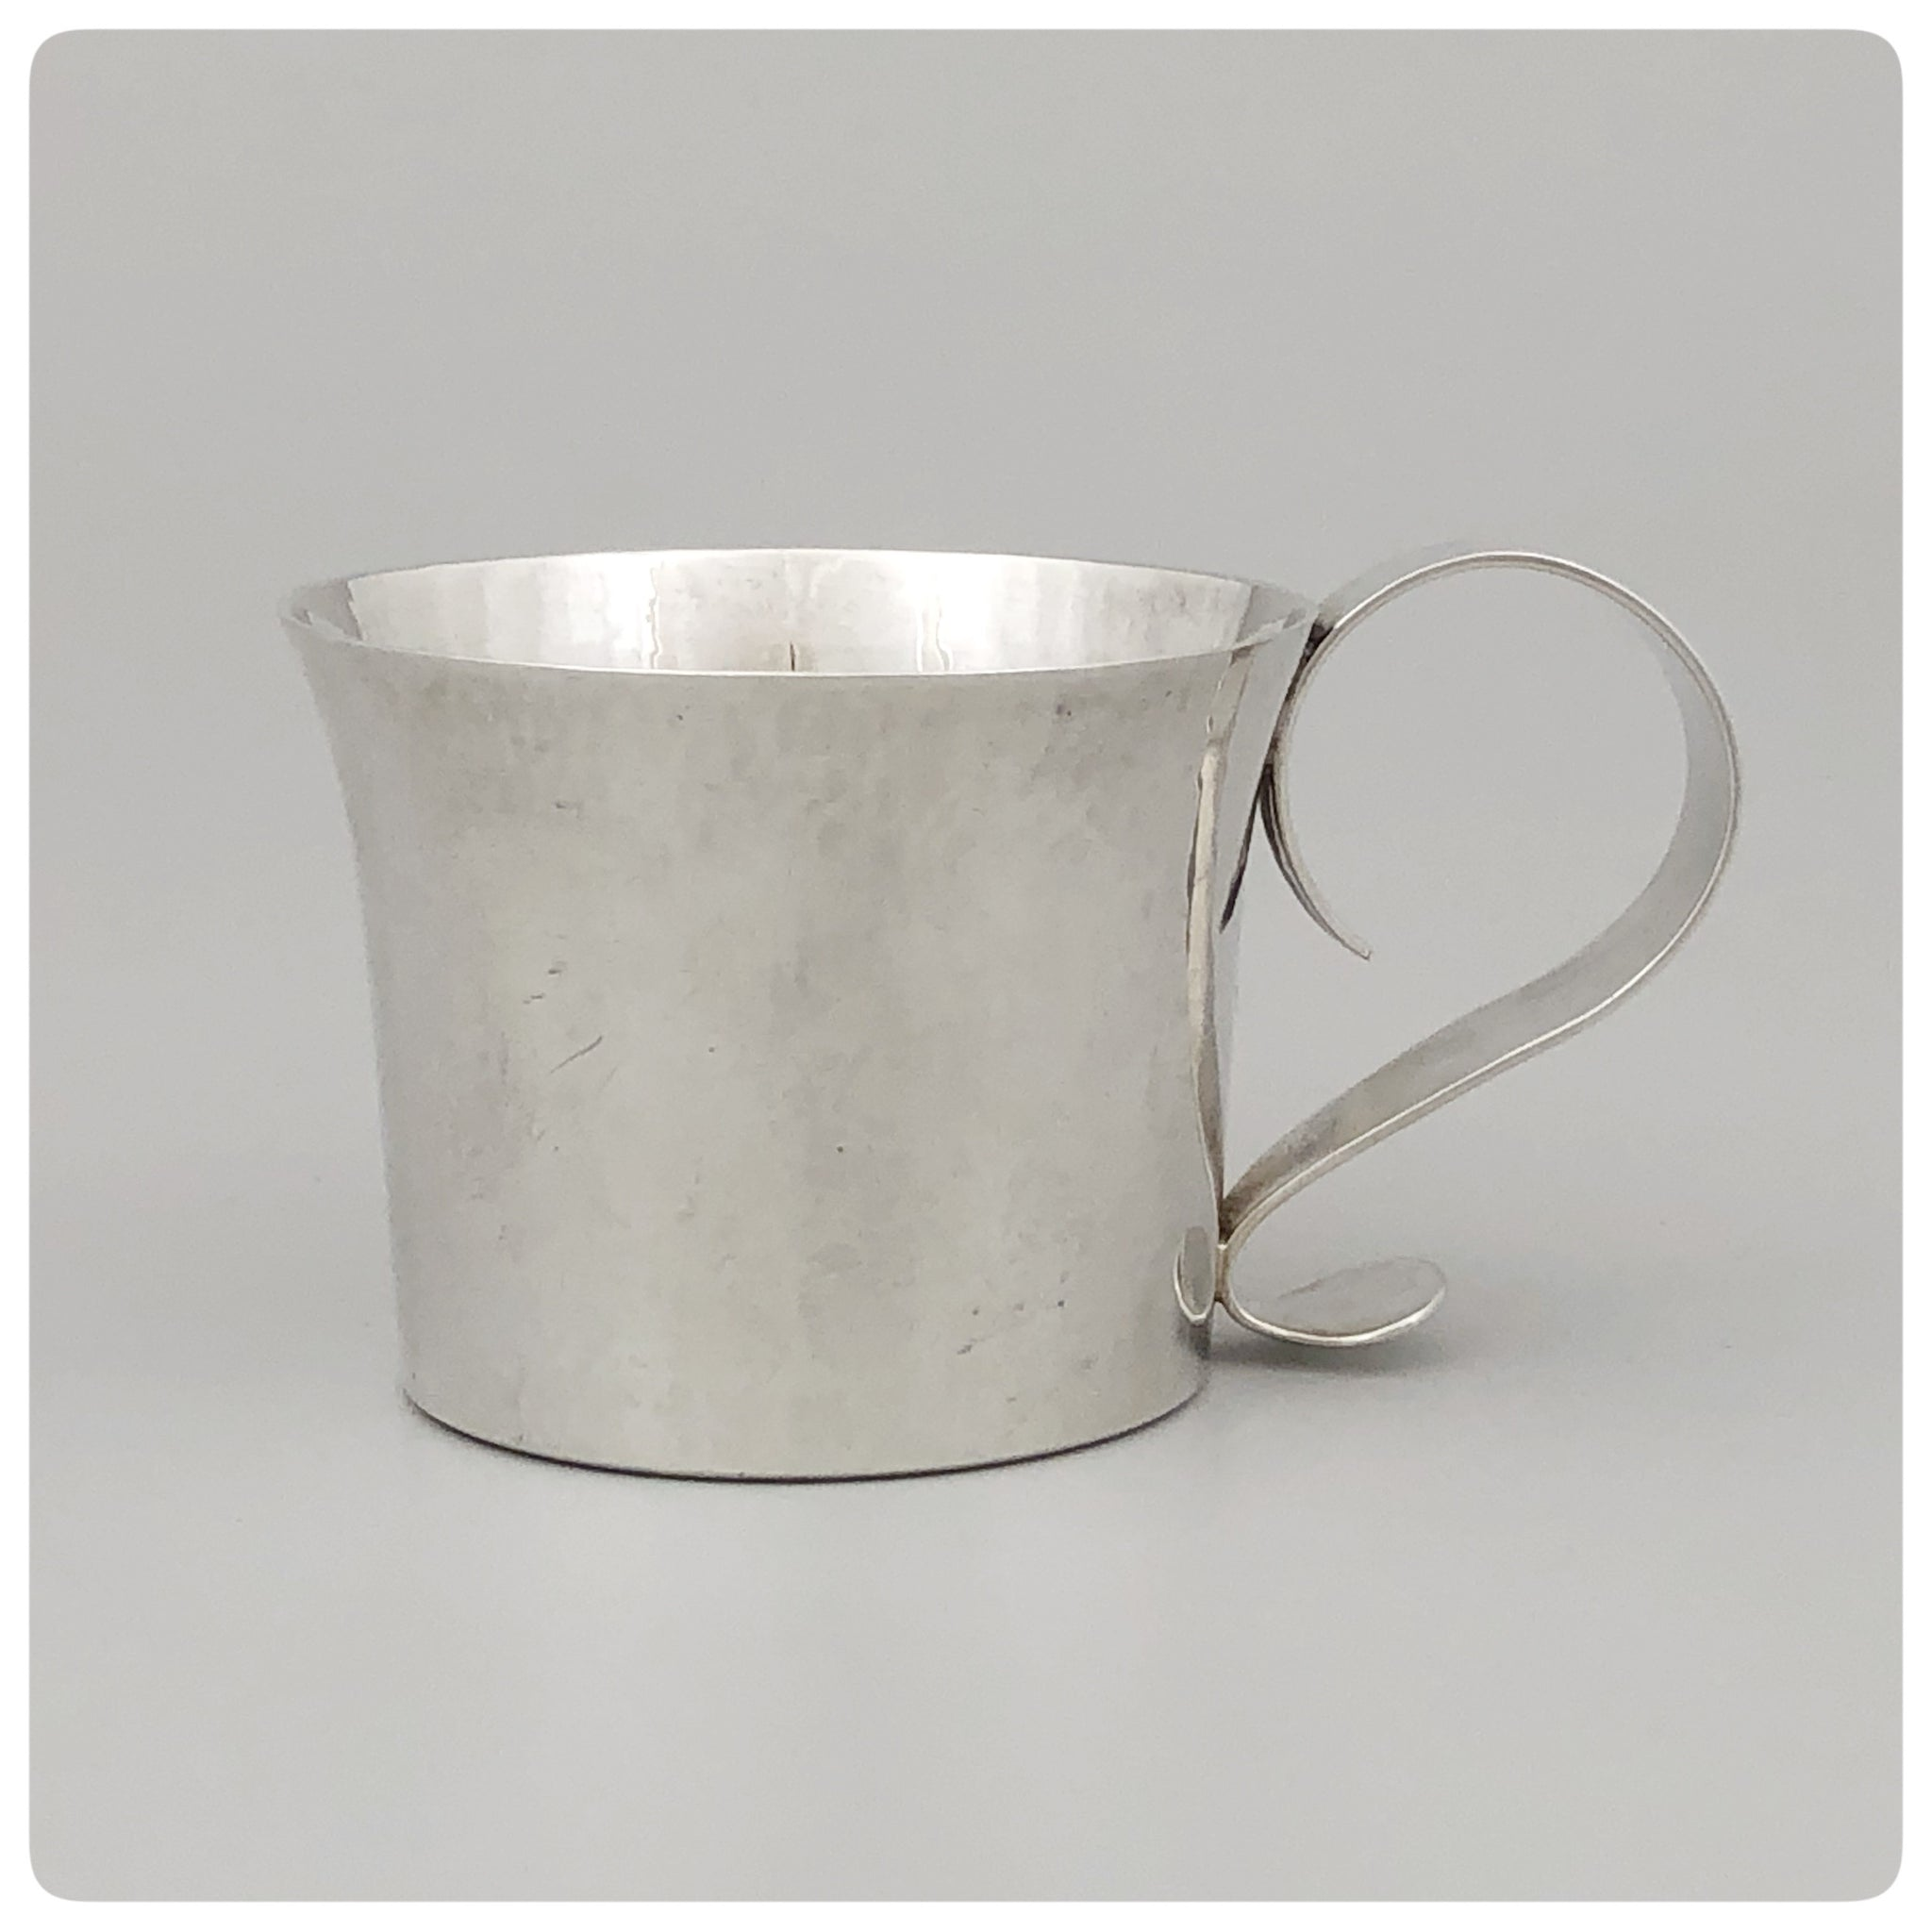 Sterling Silver Handwrought Baby Cup, William L. deMatteo, Willimasburg, VA, 1923-1988 - The Silver Vault of Charleston